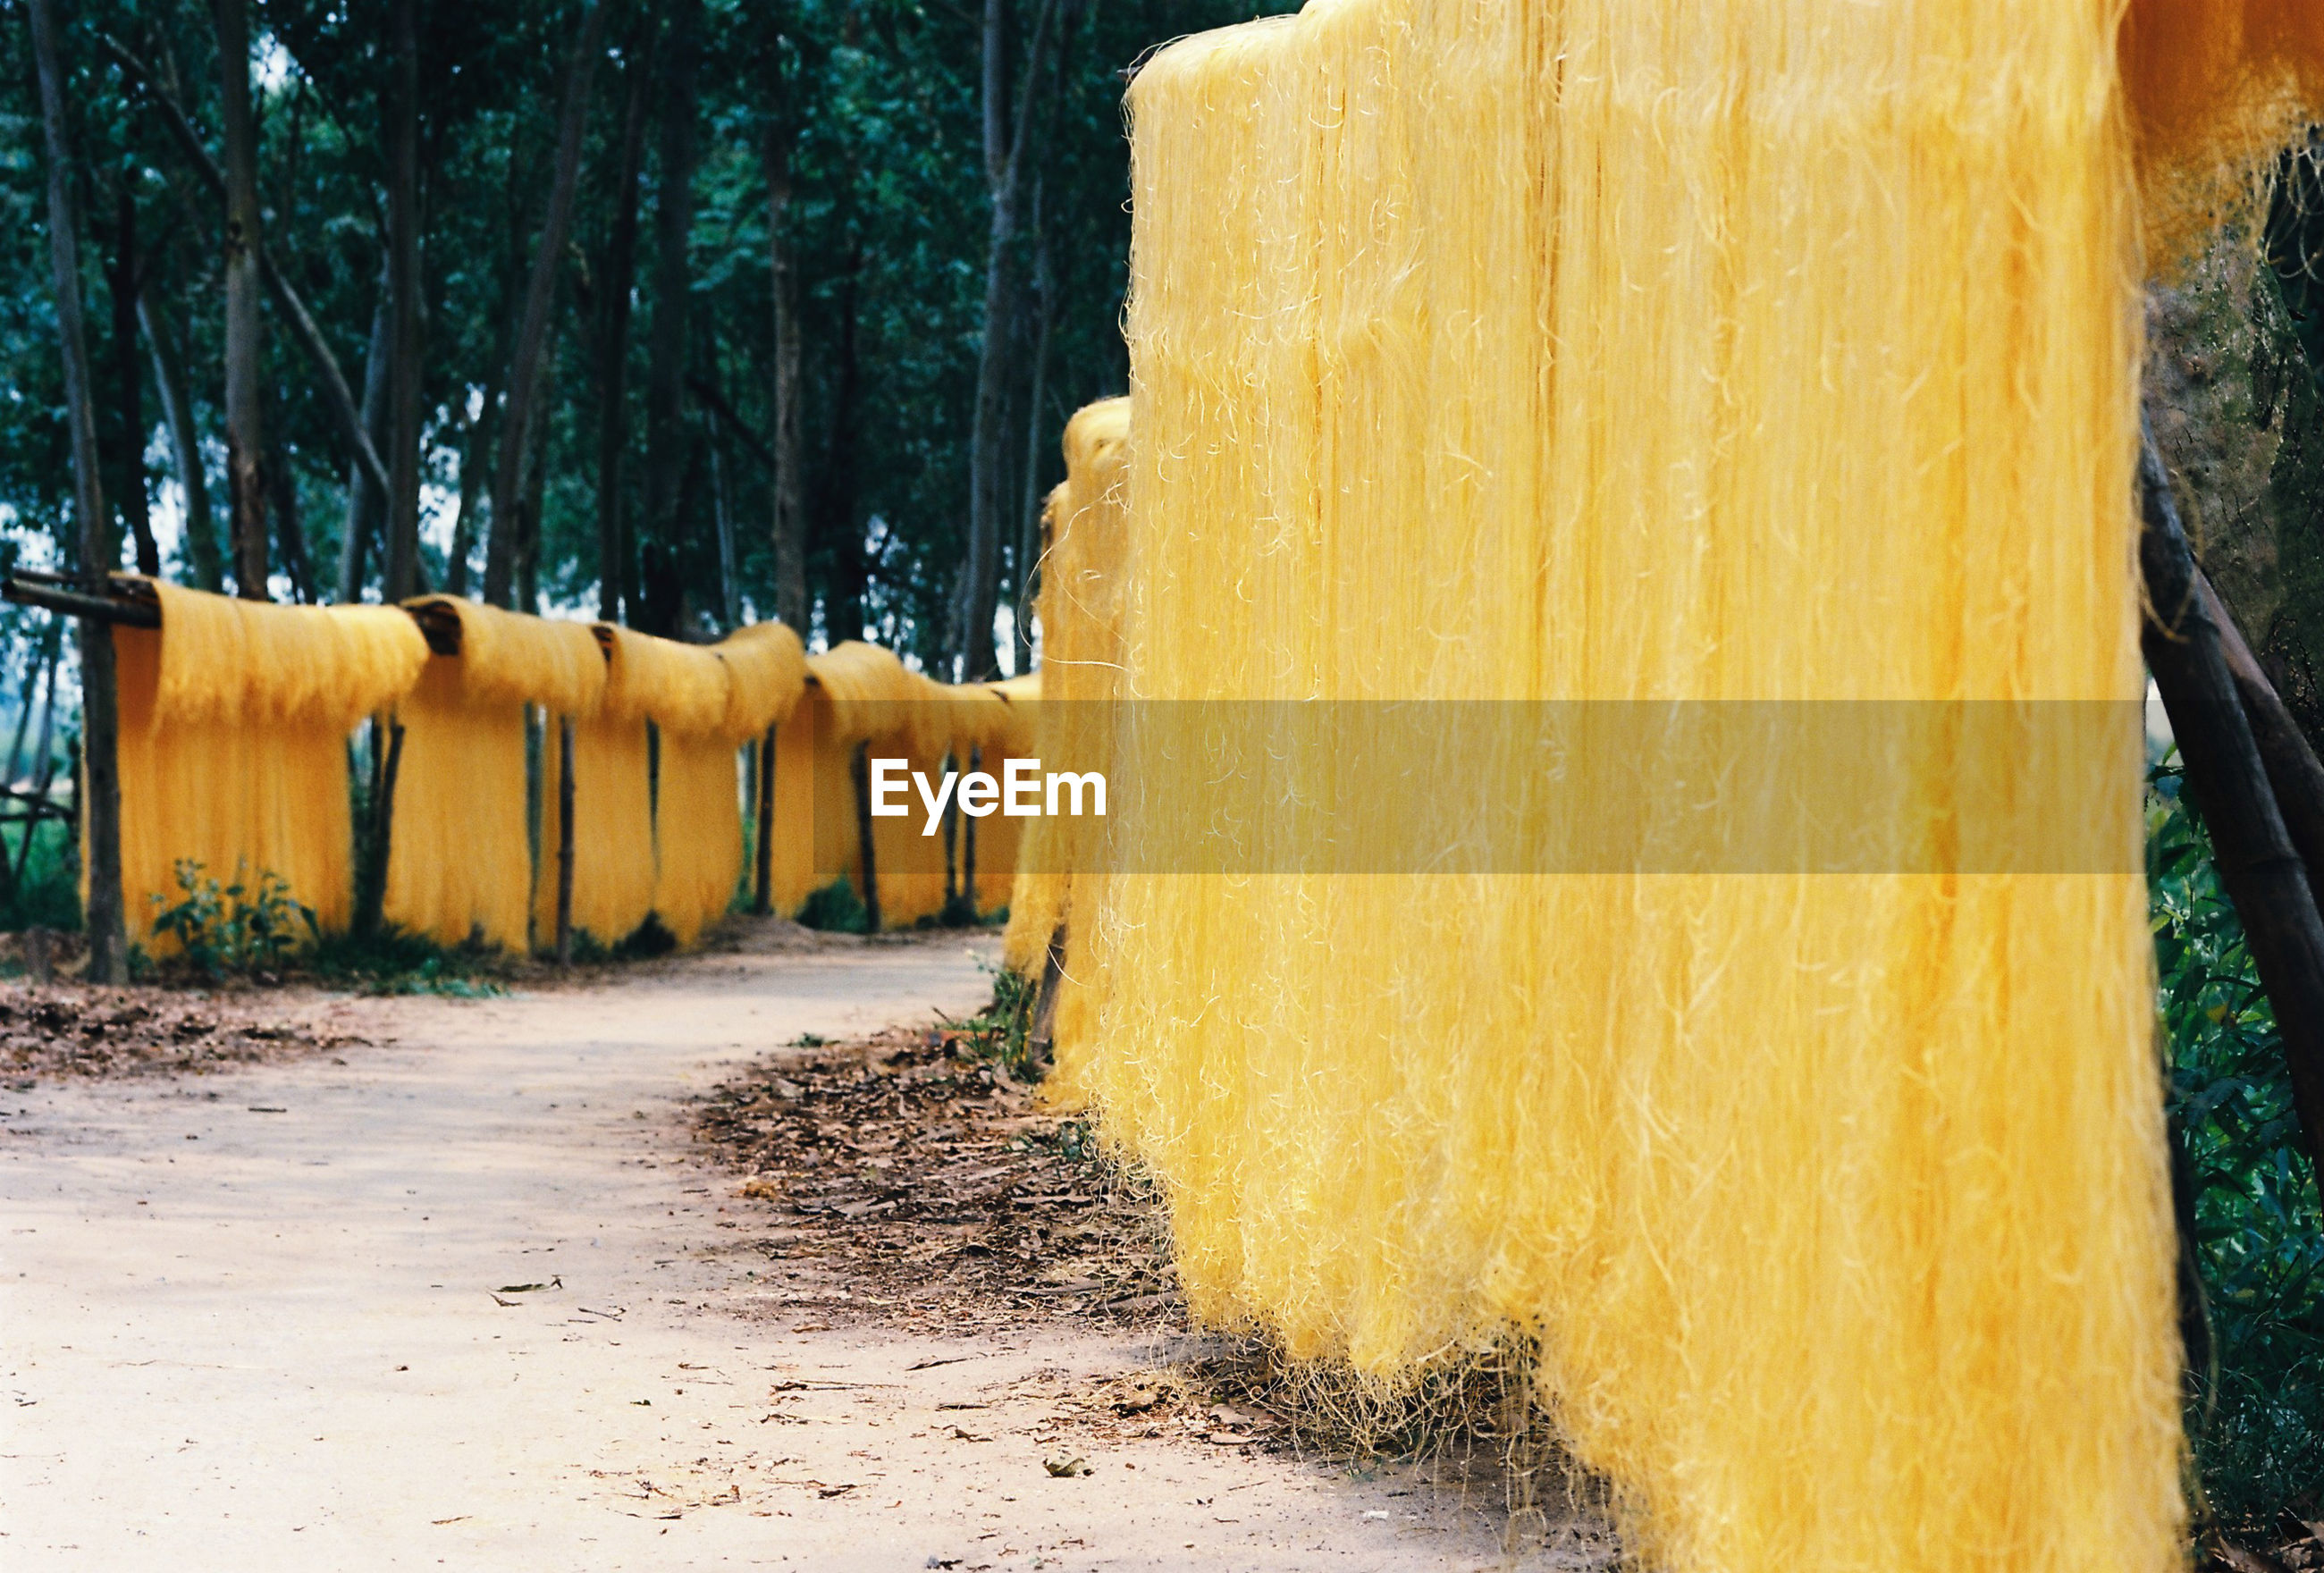 Yellow objects drying against trees